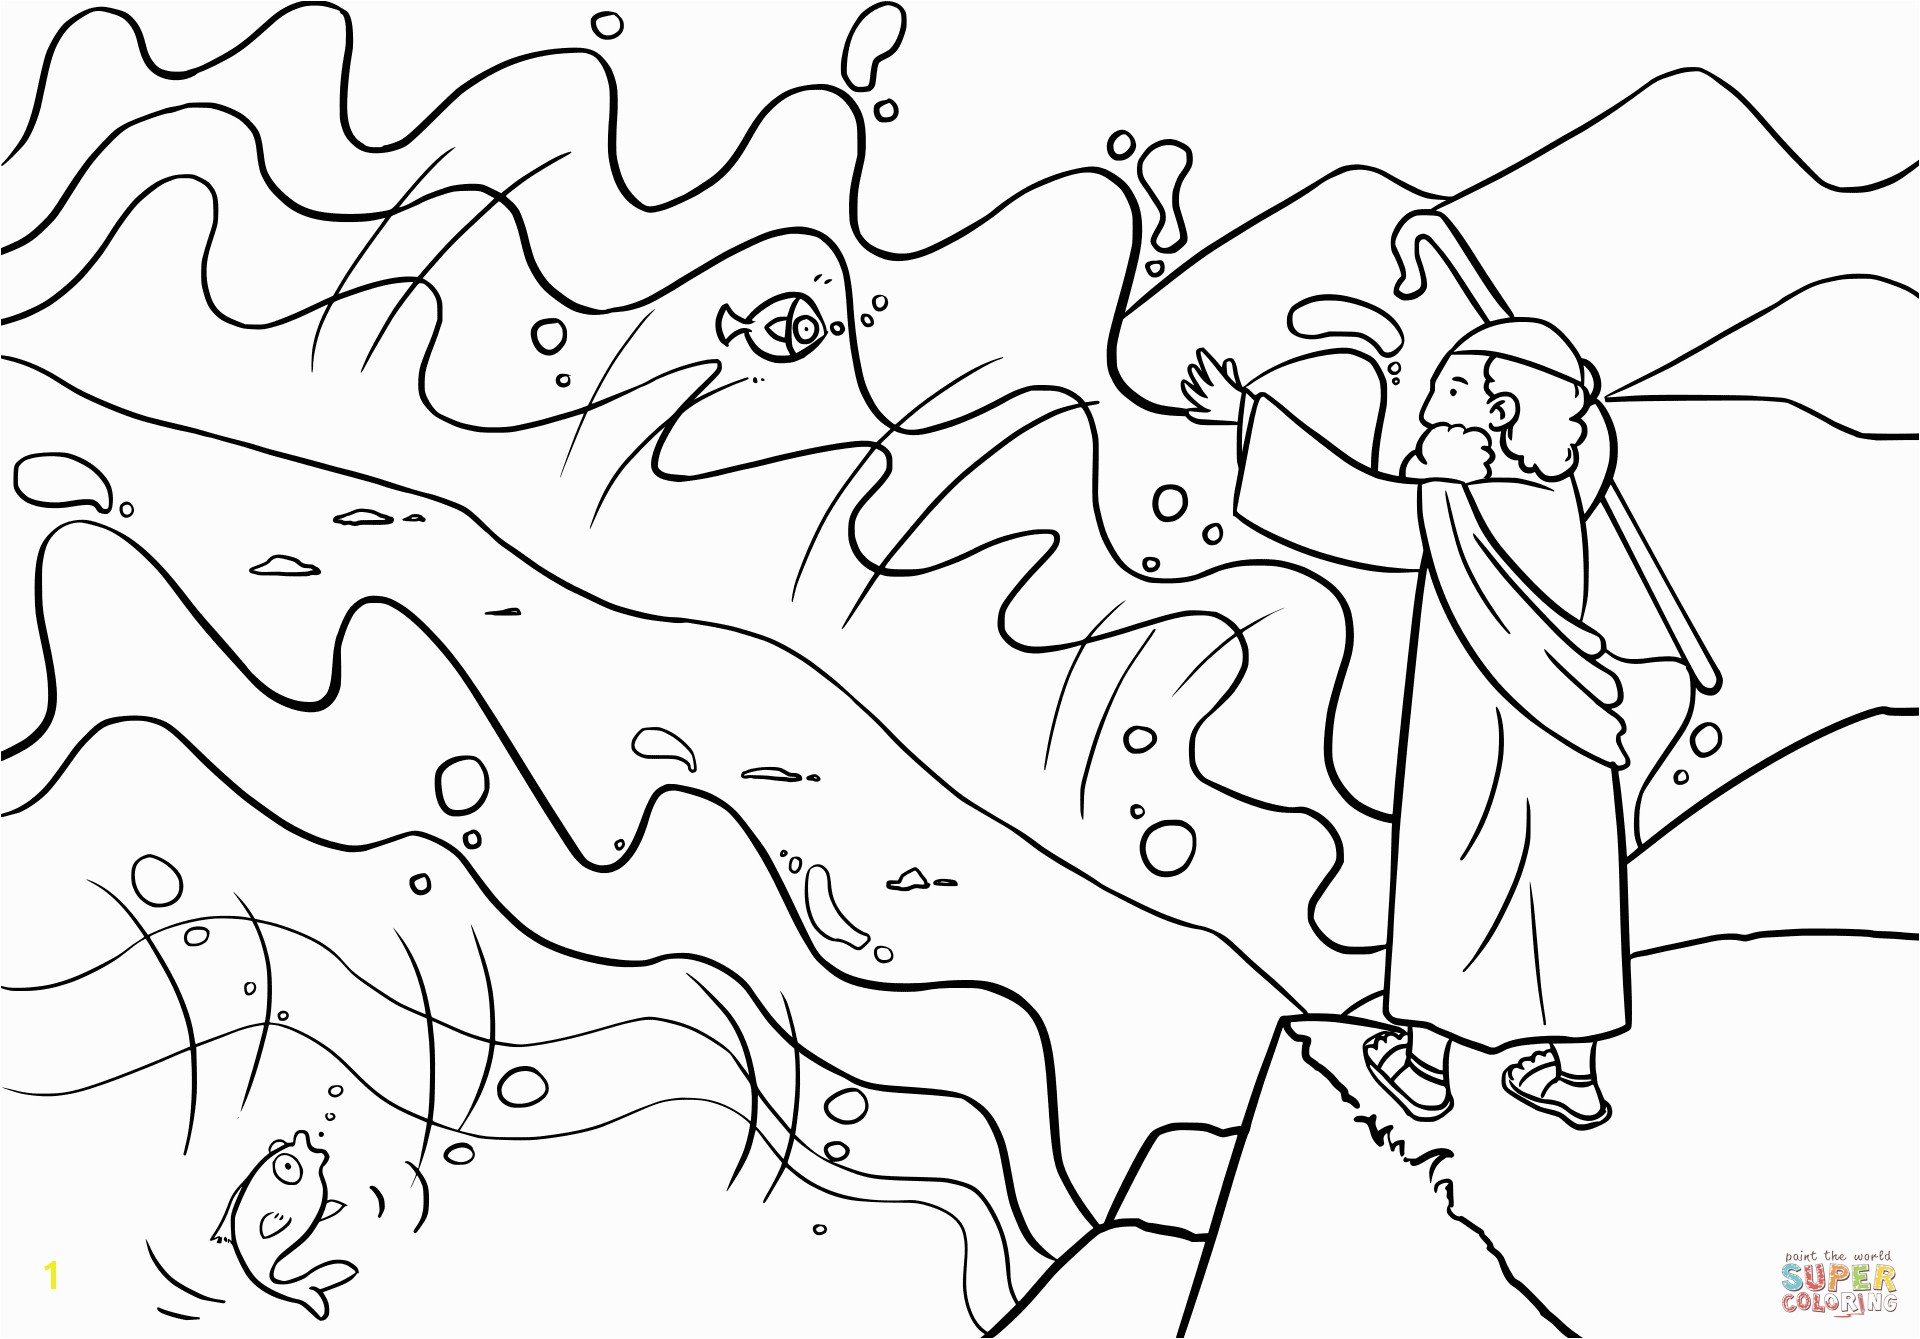 moses parts the red sea coloring sheet focus moses and the red sea coloring page parts free printable pages